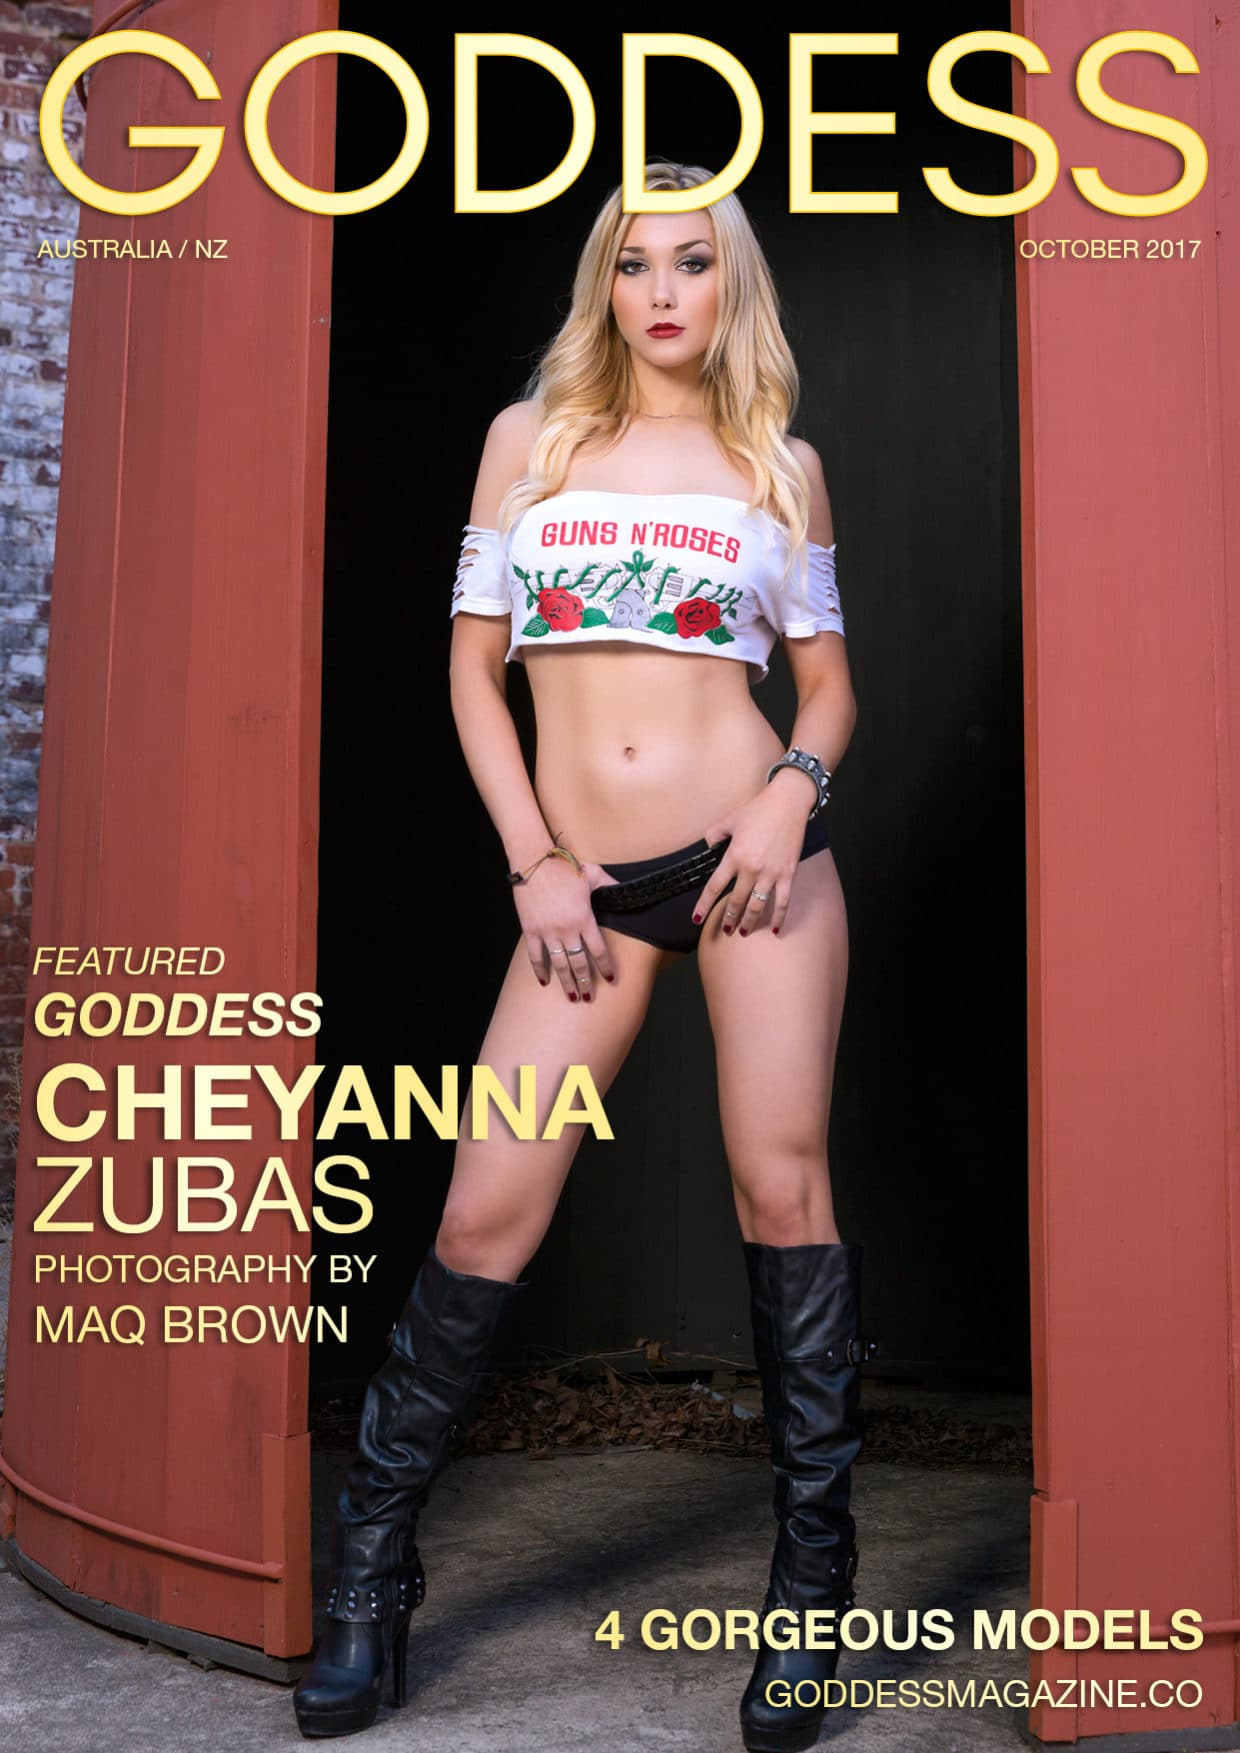 Goddess Magazine – October 2017 – Cheyanna Zubas